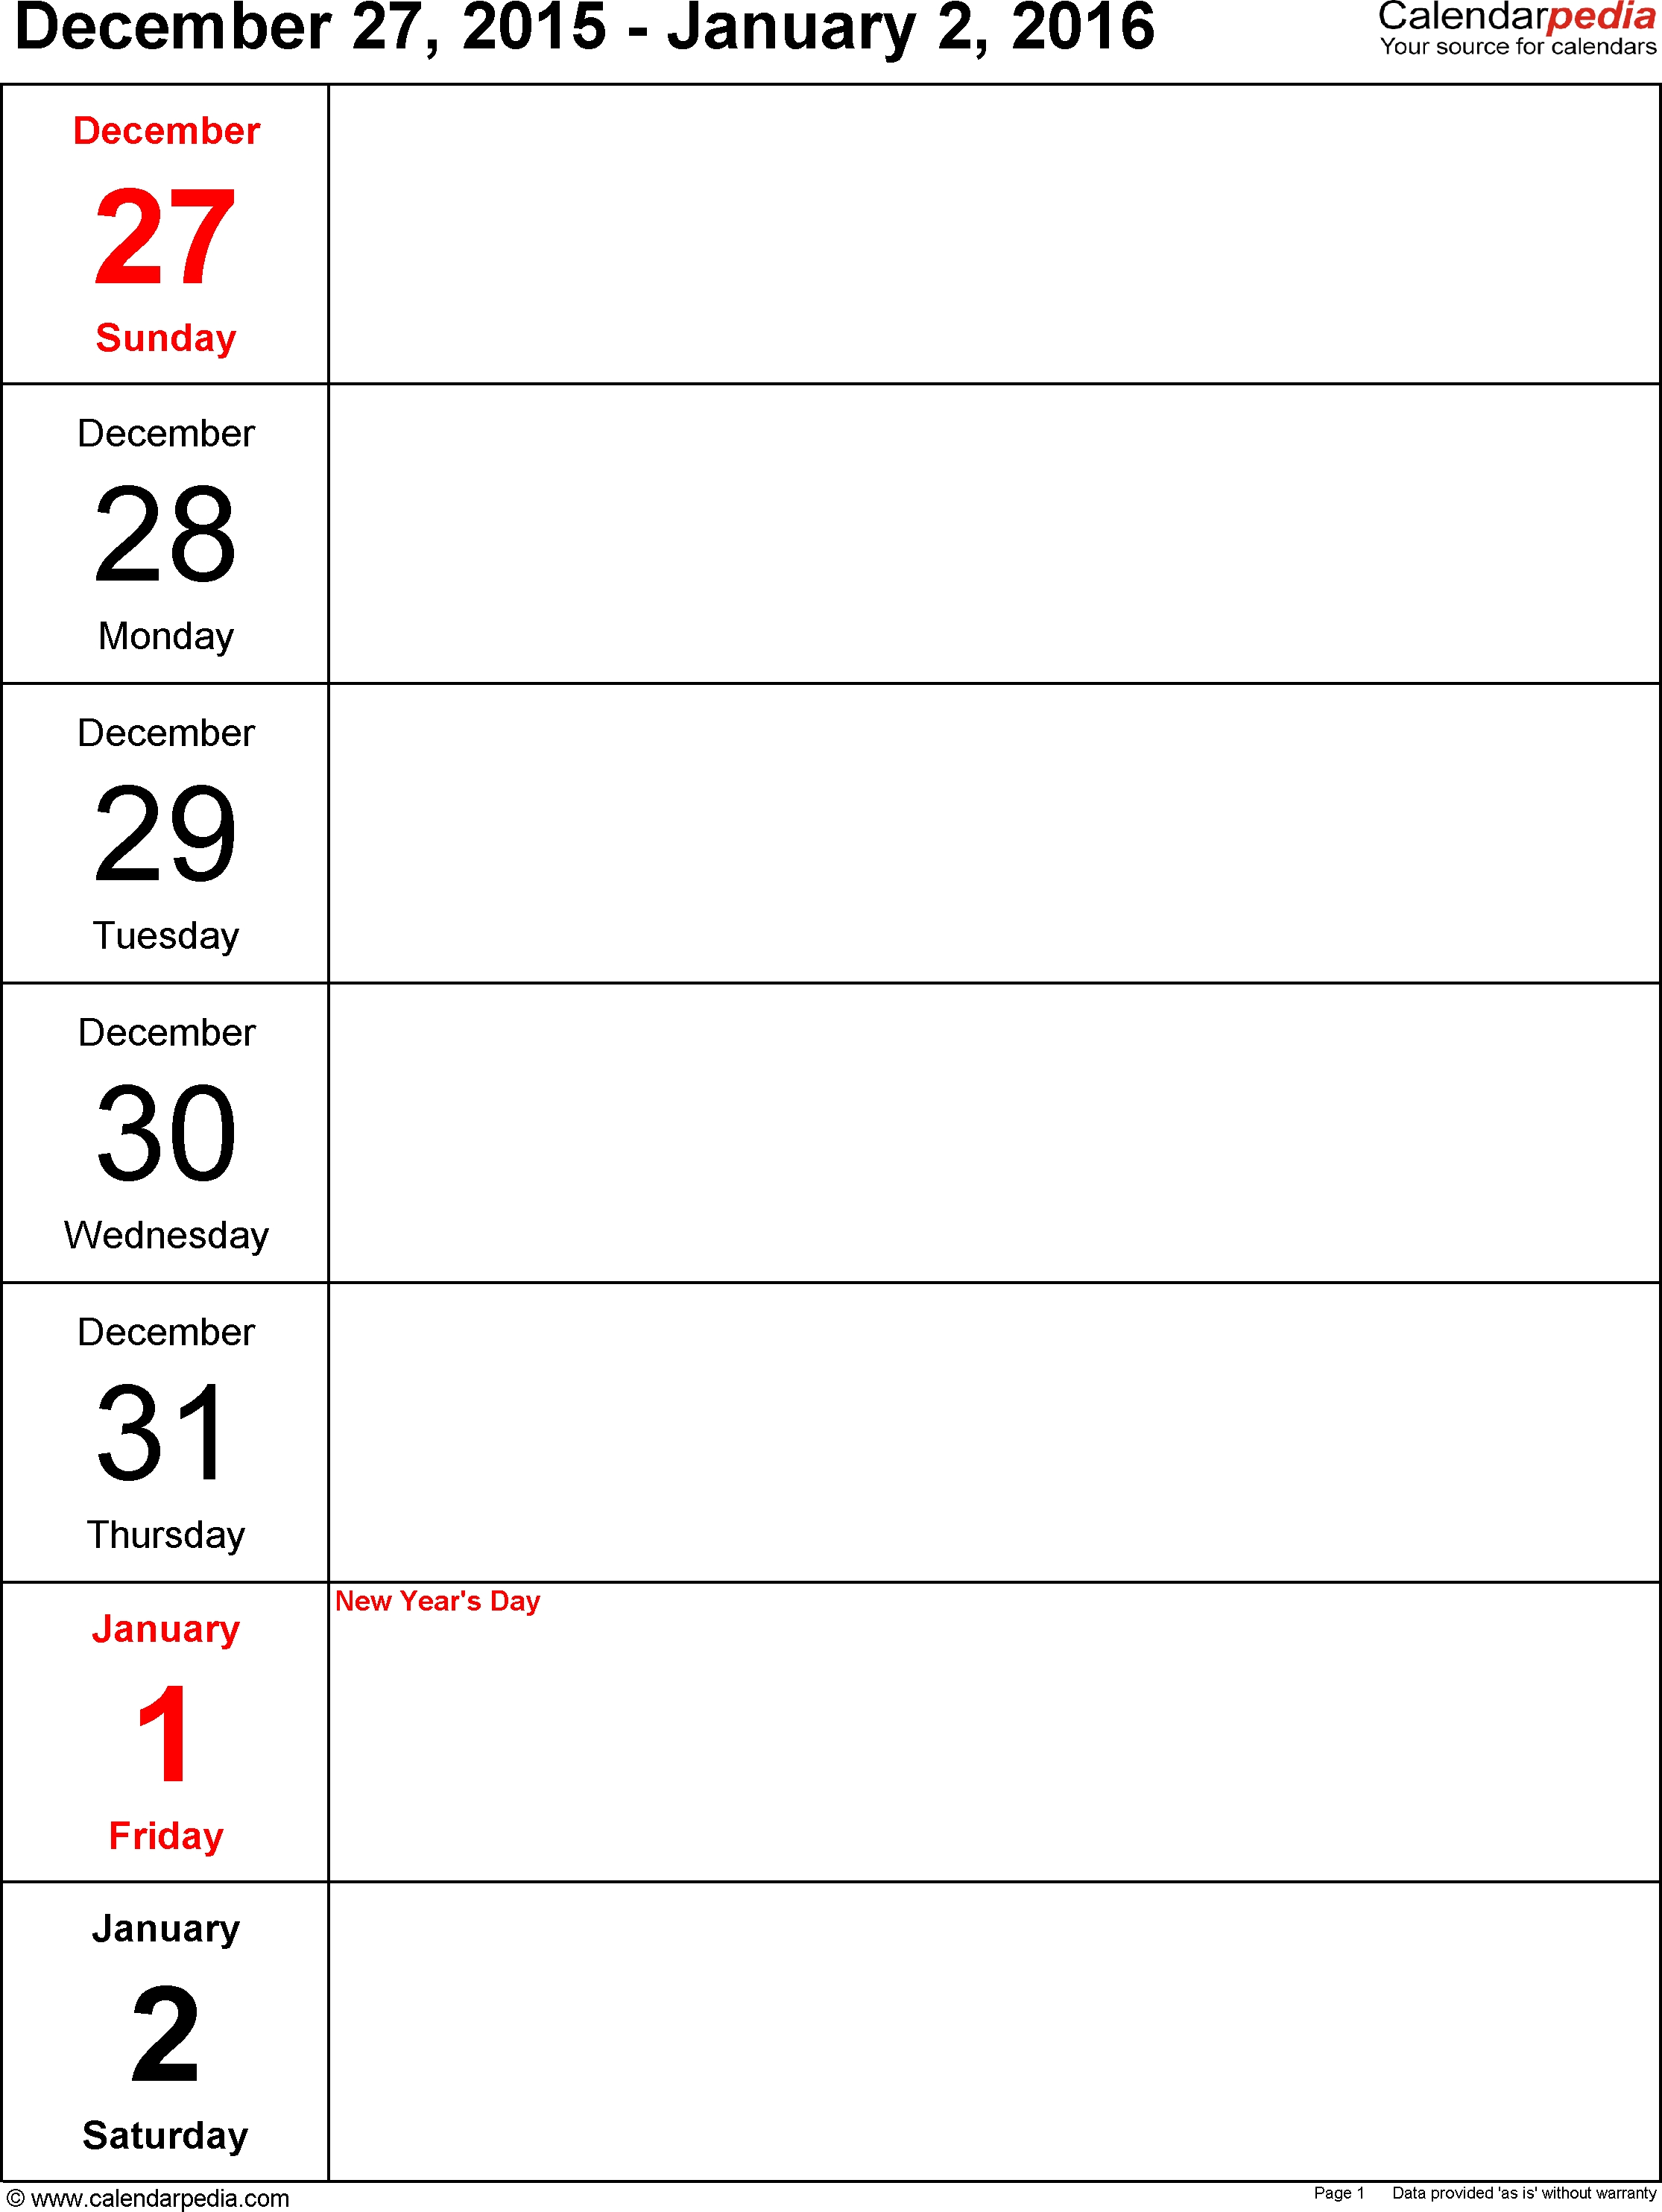 Weekly Calendar 2016 For Word - 12 Free Printable Templates  Free Printable Blank Weekly Calendars